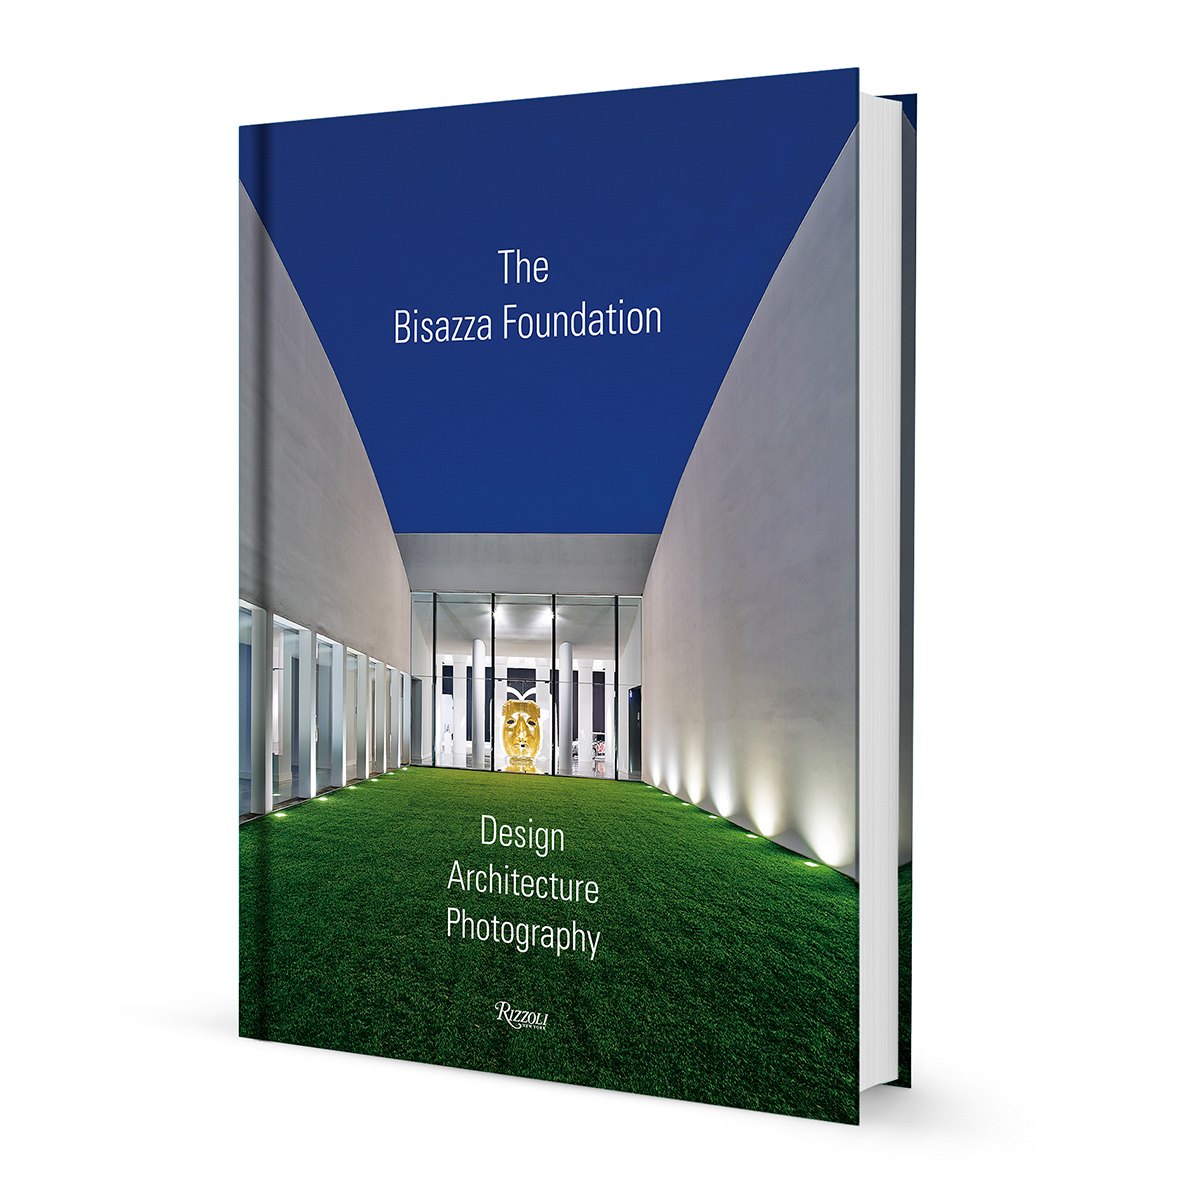 The Bisazza Foundation book, by Ian Phillips